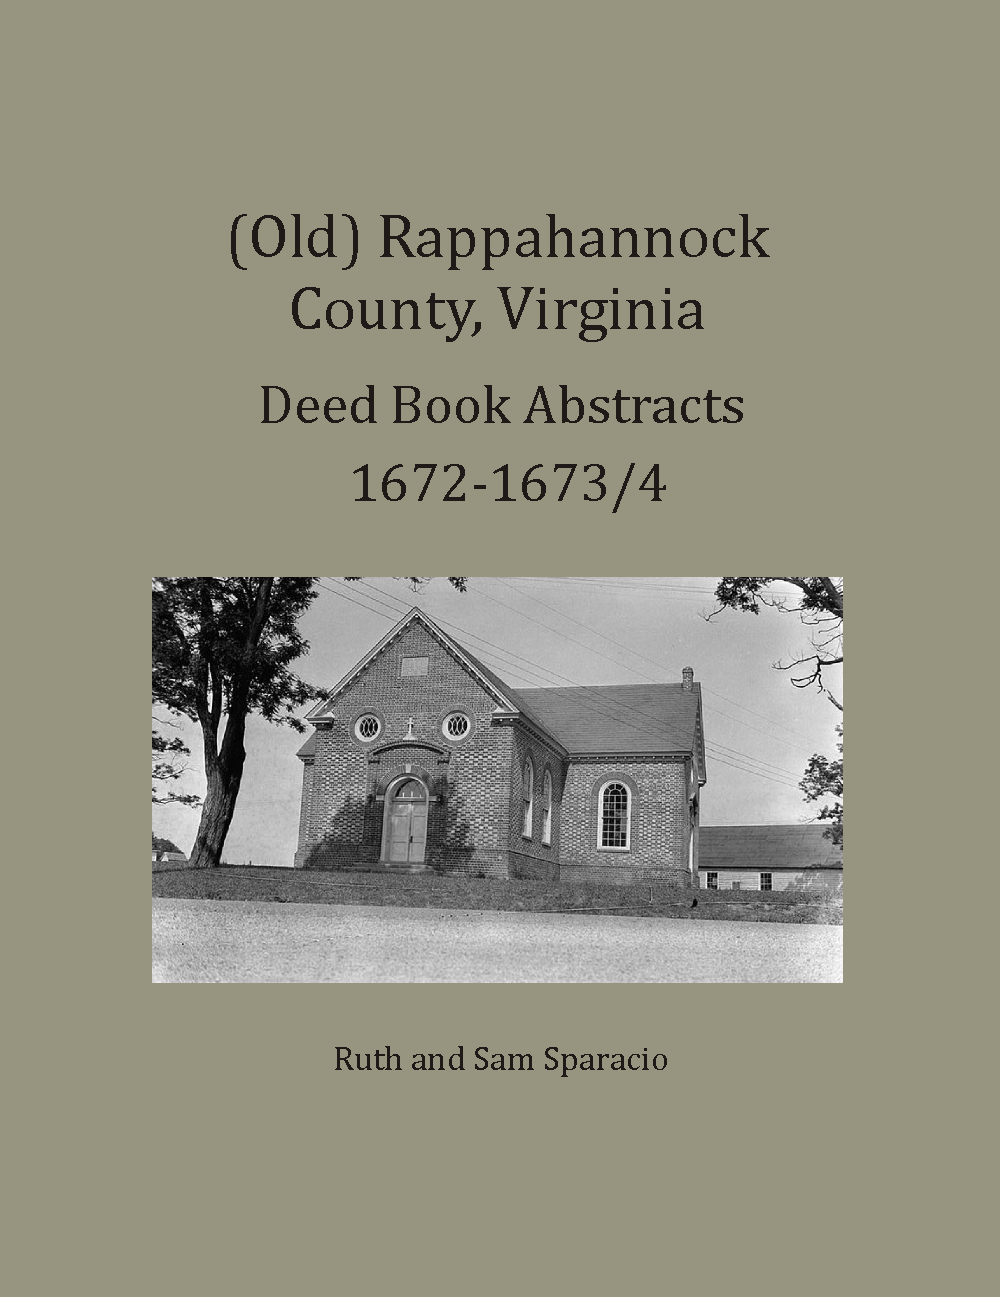 (Old) Rappahannock County, Virginia Deed and Will Book Abstracts, 1672-1673/4